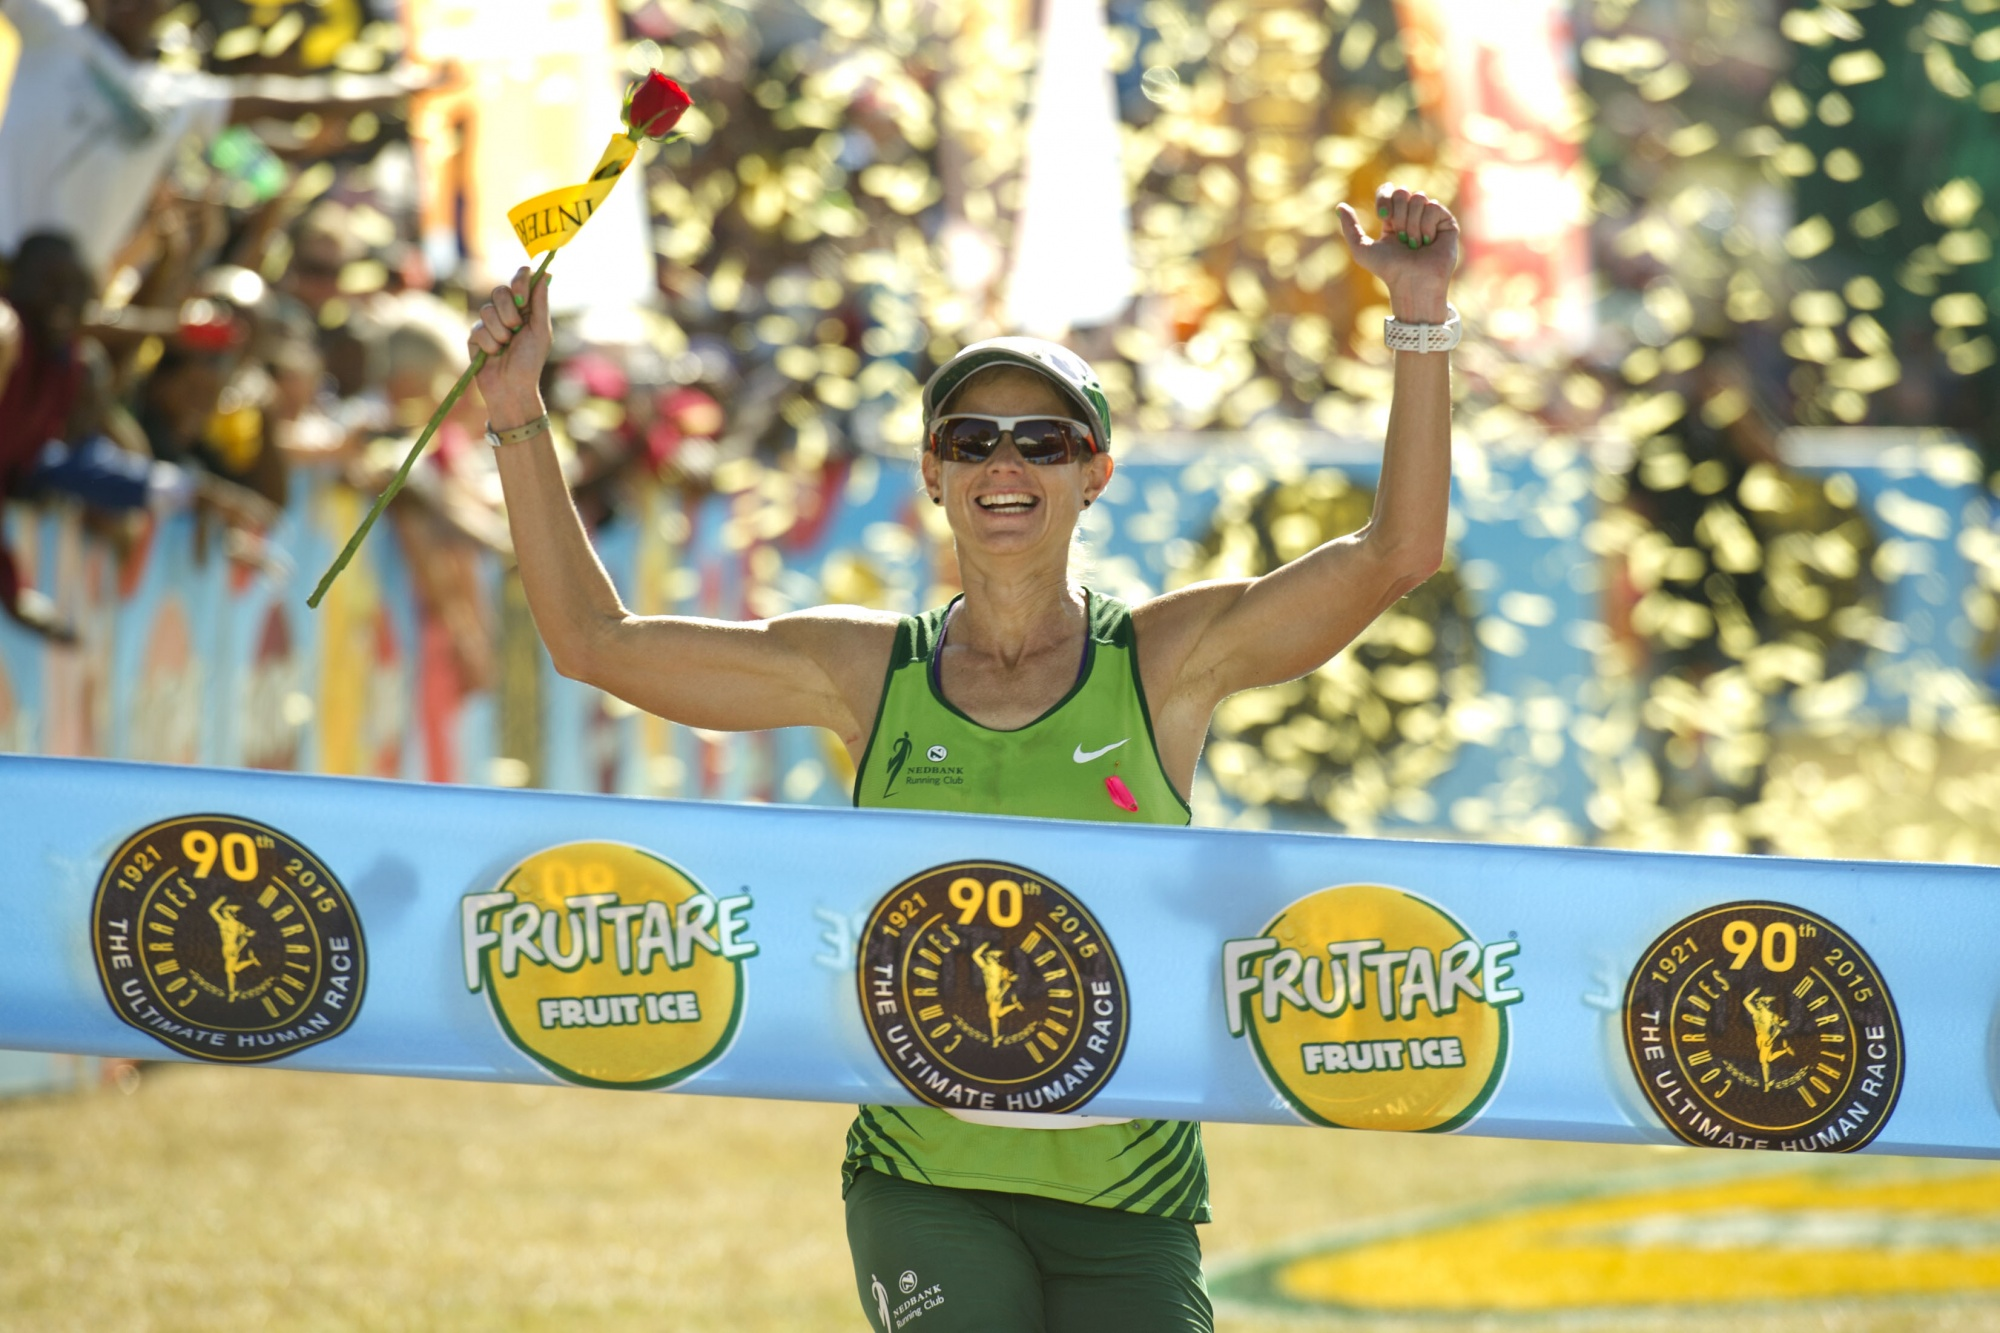 Caroline Wöstmann celebrates her 2015 Comrades Marathon victory. Her ability to manage the massive 90km race into smaller segments meant she was able to achieve small victories along the way . Image supplied by Haiko Wöstmann